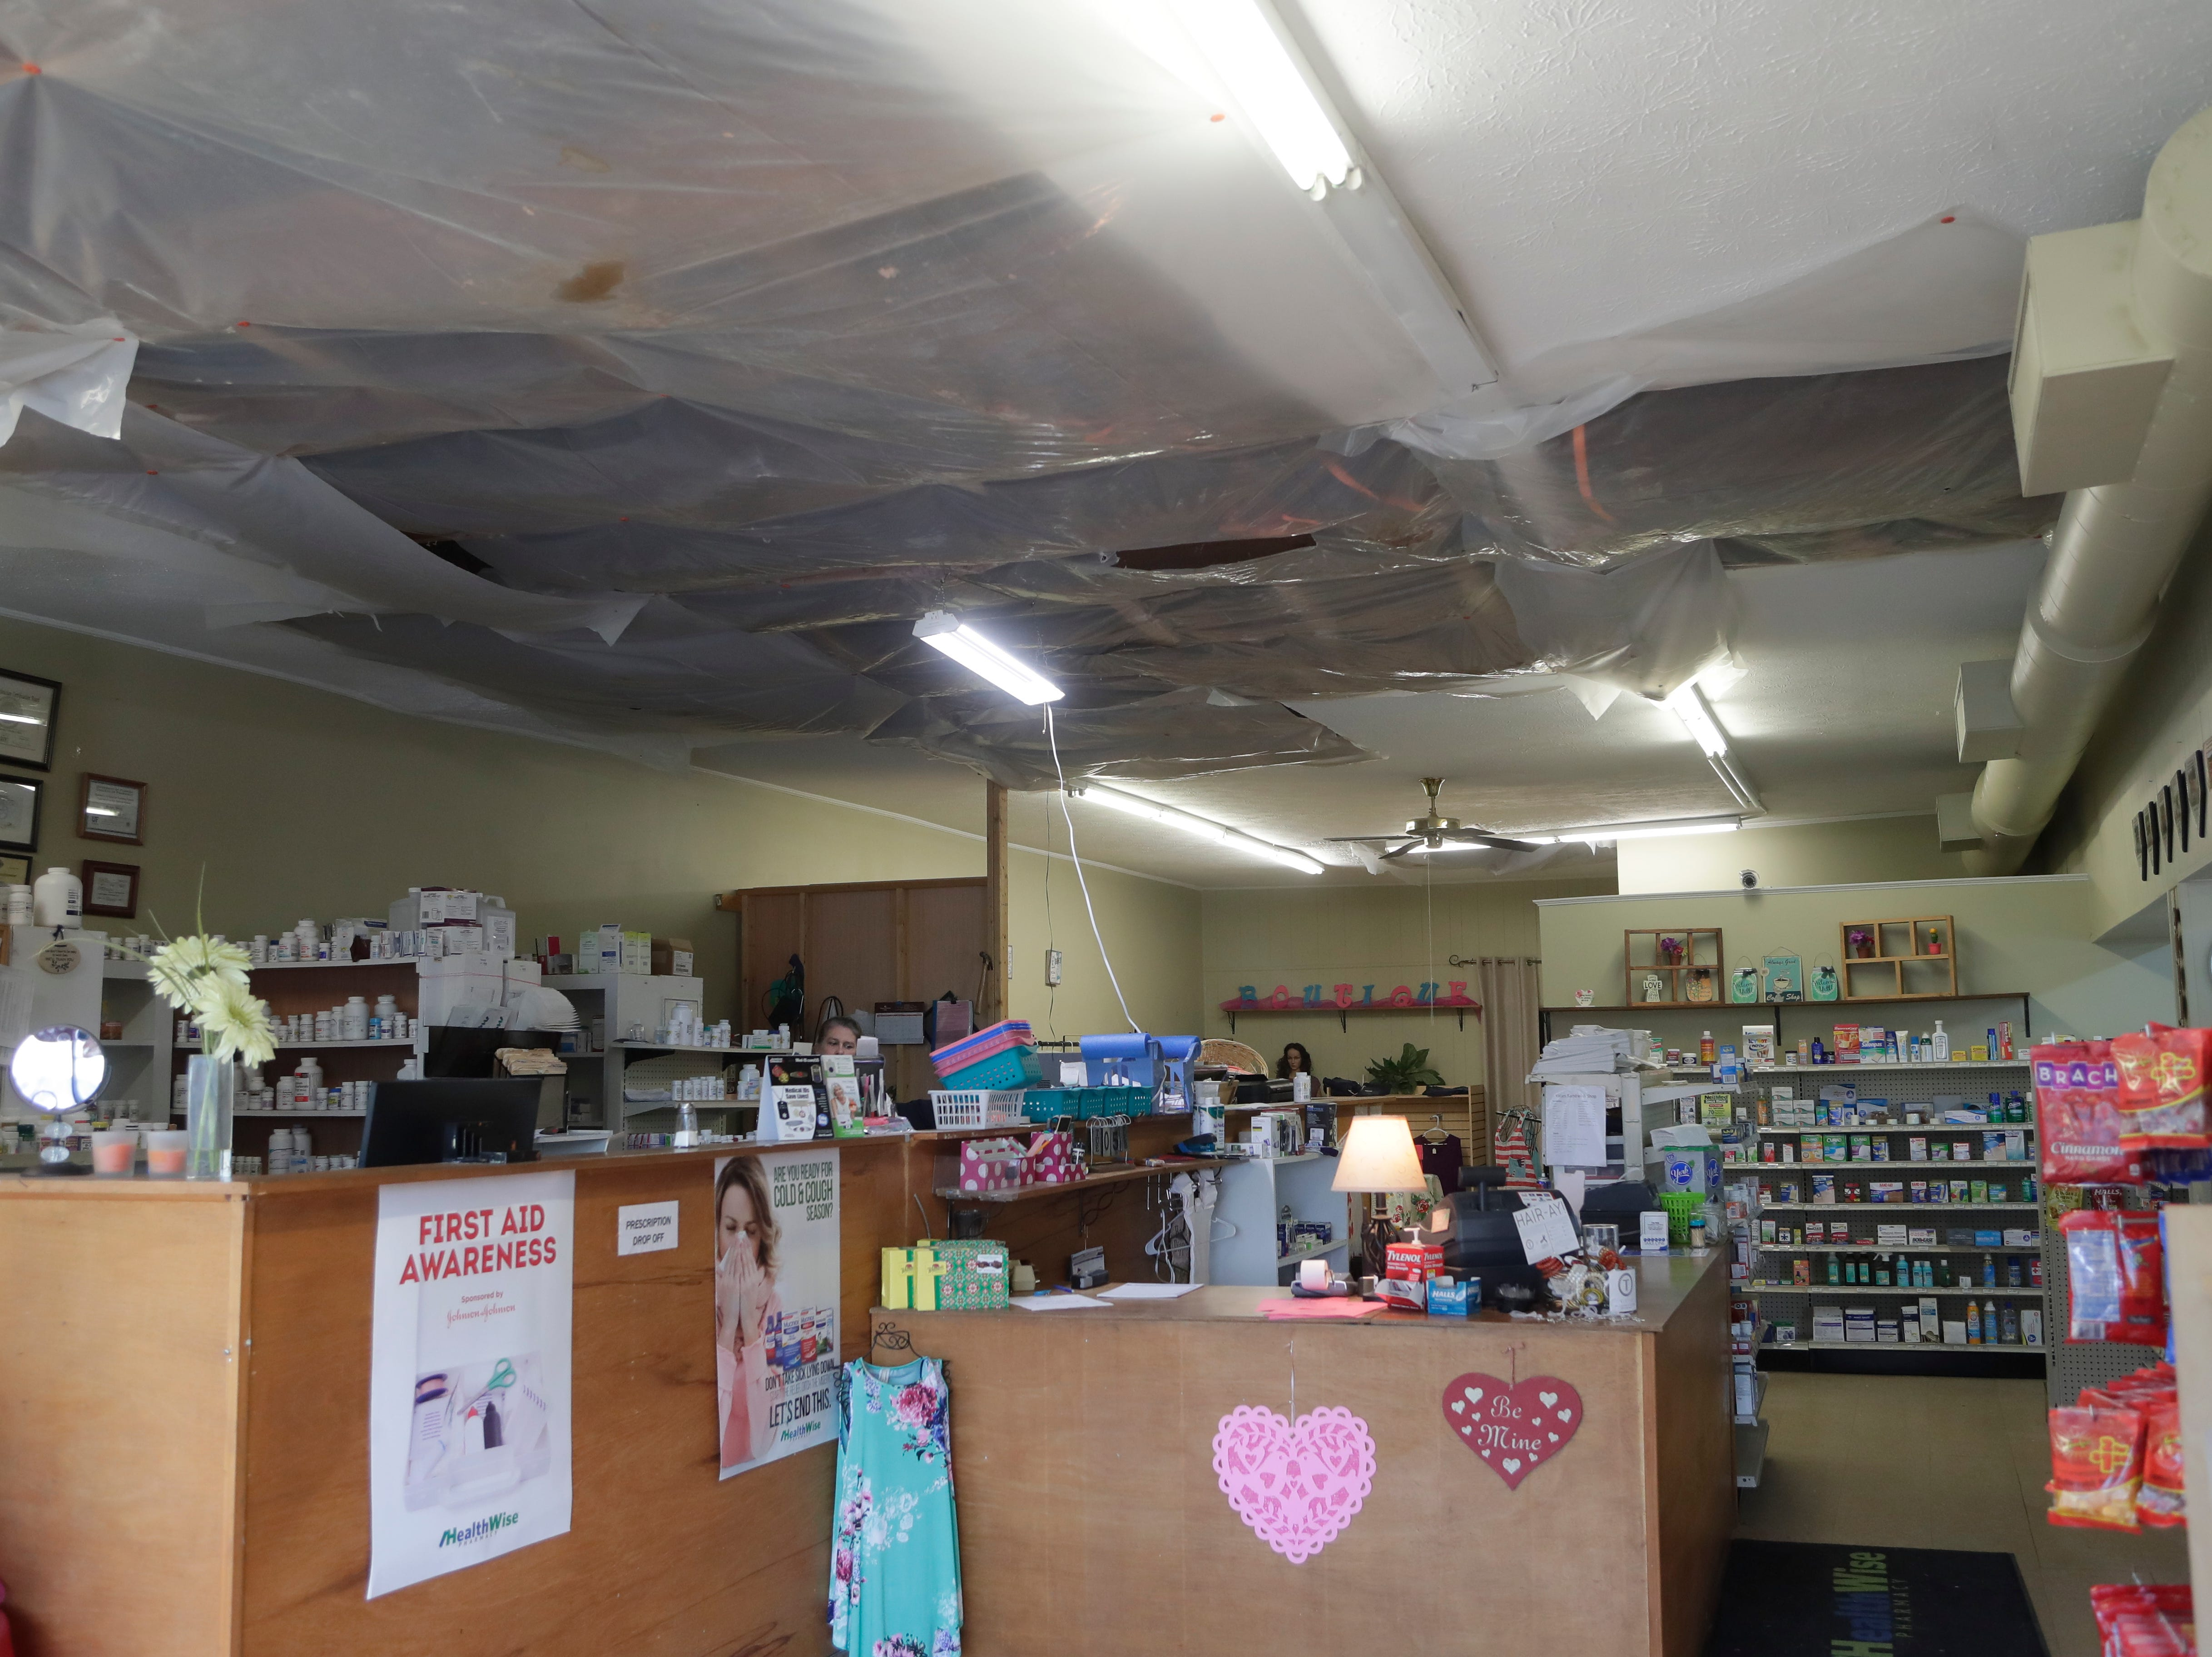 The ceiling of Yates Pharmacy and Gifts has tarp covering the openings created four months prior by Hurricane Michael.